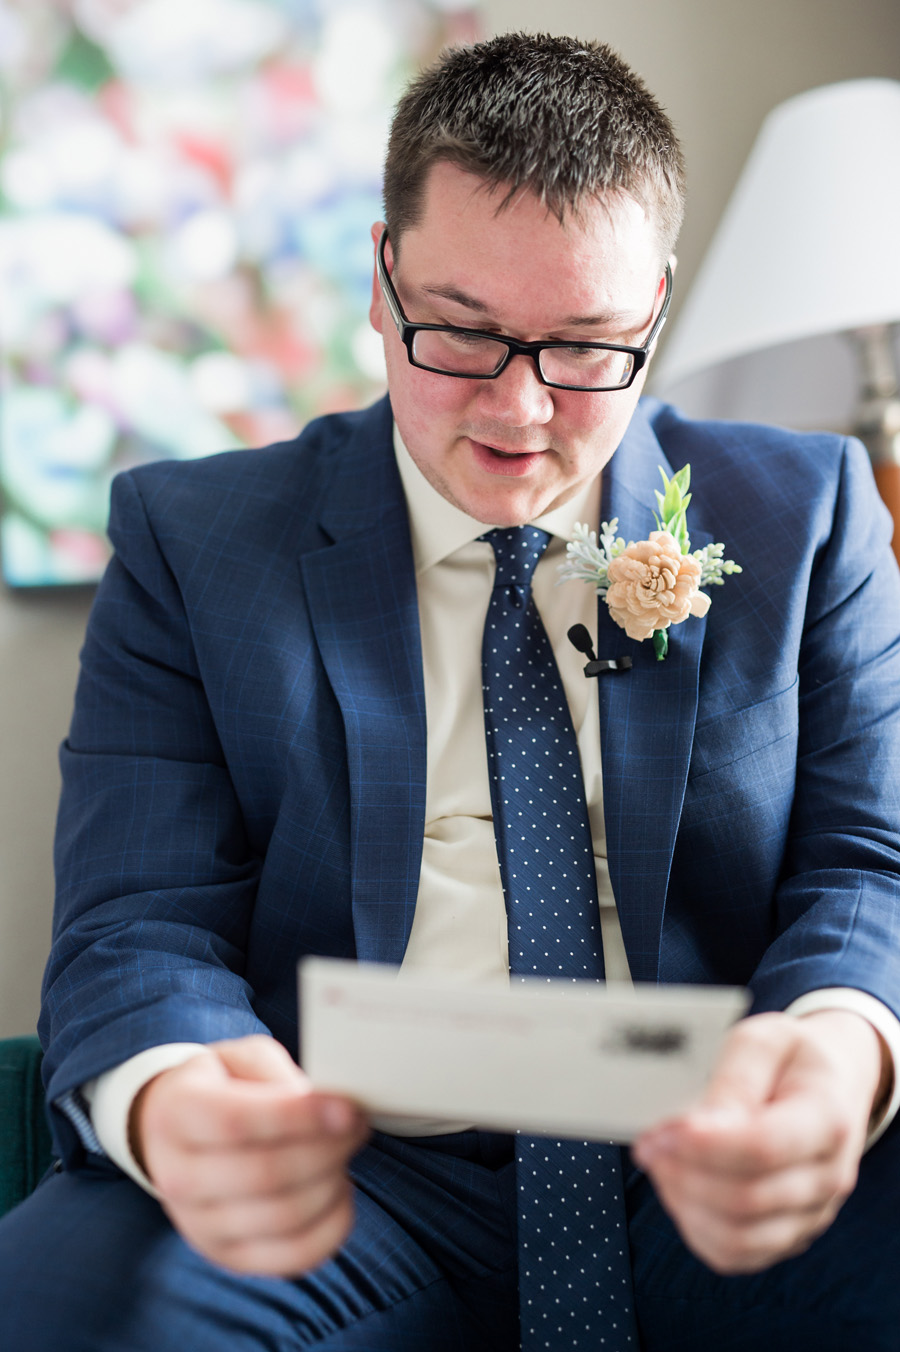 Groom reading letter from bride.